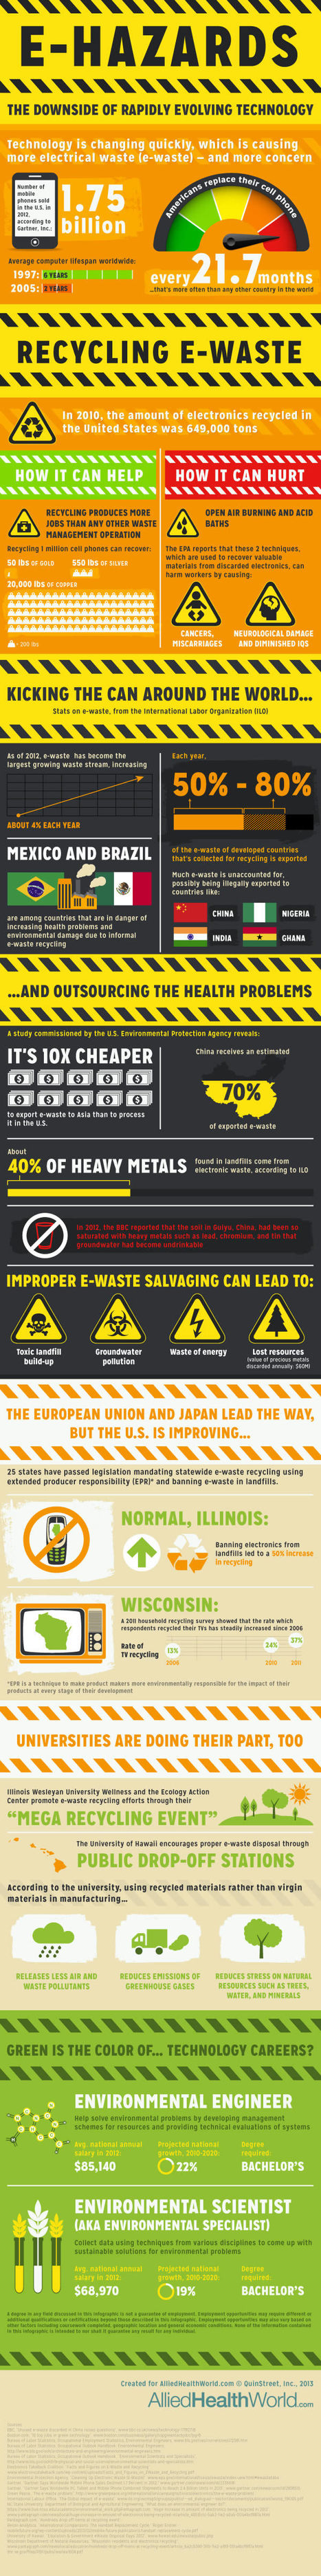 E-Hazards: Manifest Tragedy [Infographic] | green infographics | Scoop.it